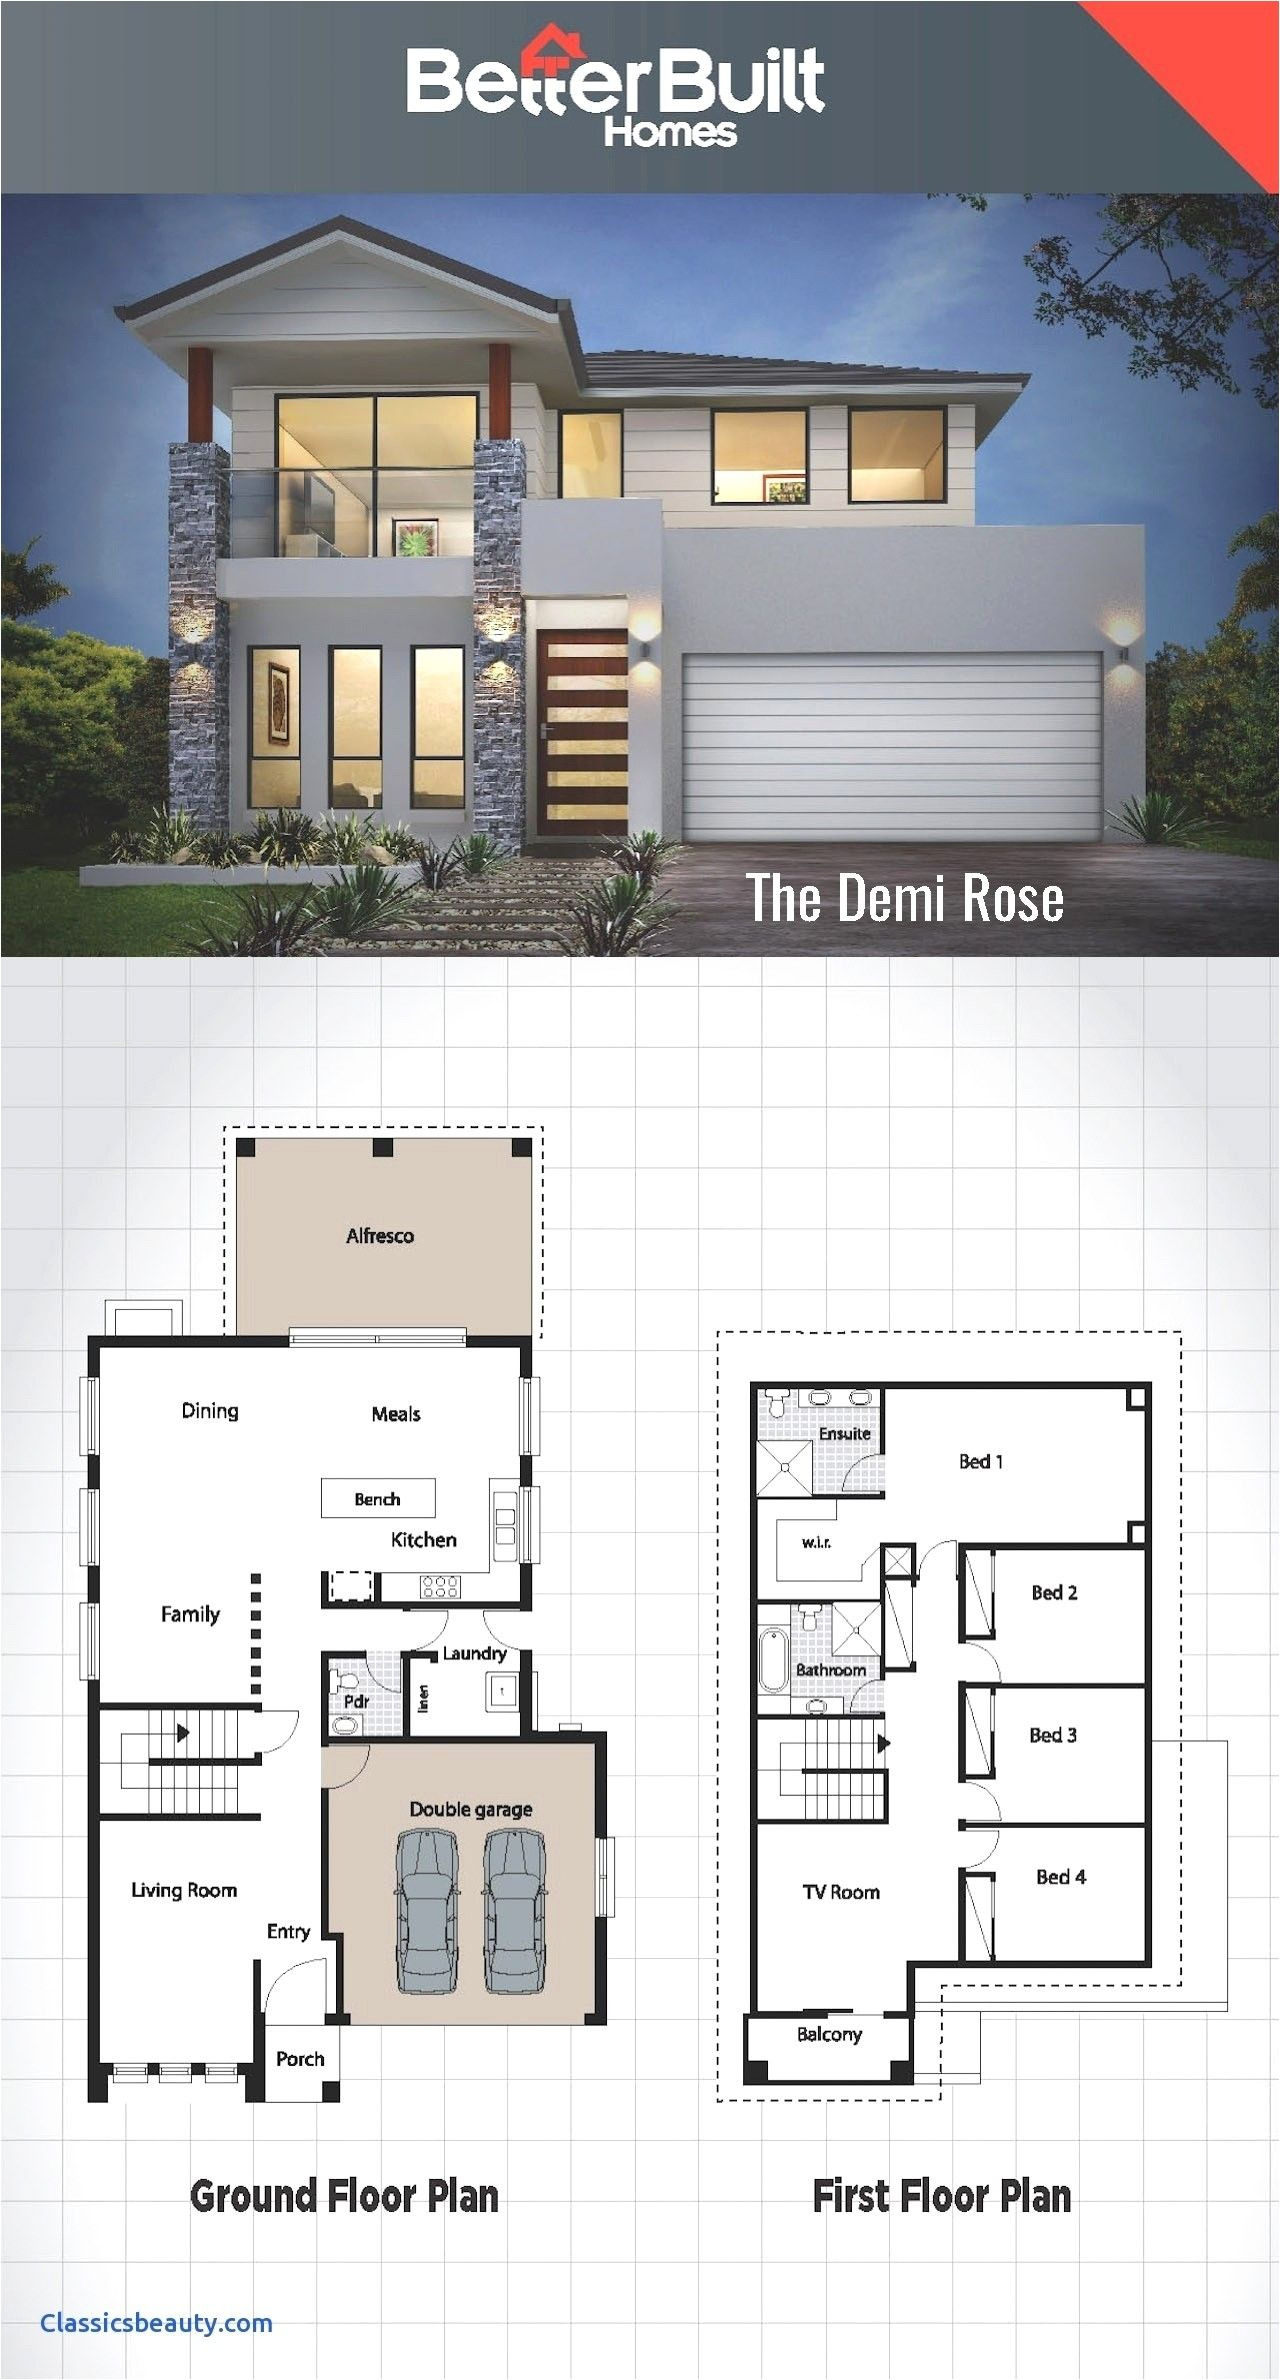 House Plans Under 100k Inspirational House Plans Under 200k to Build Philippines